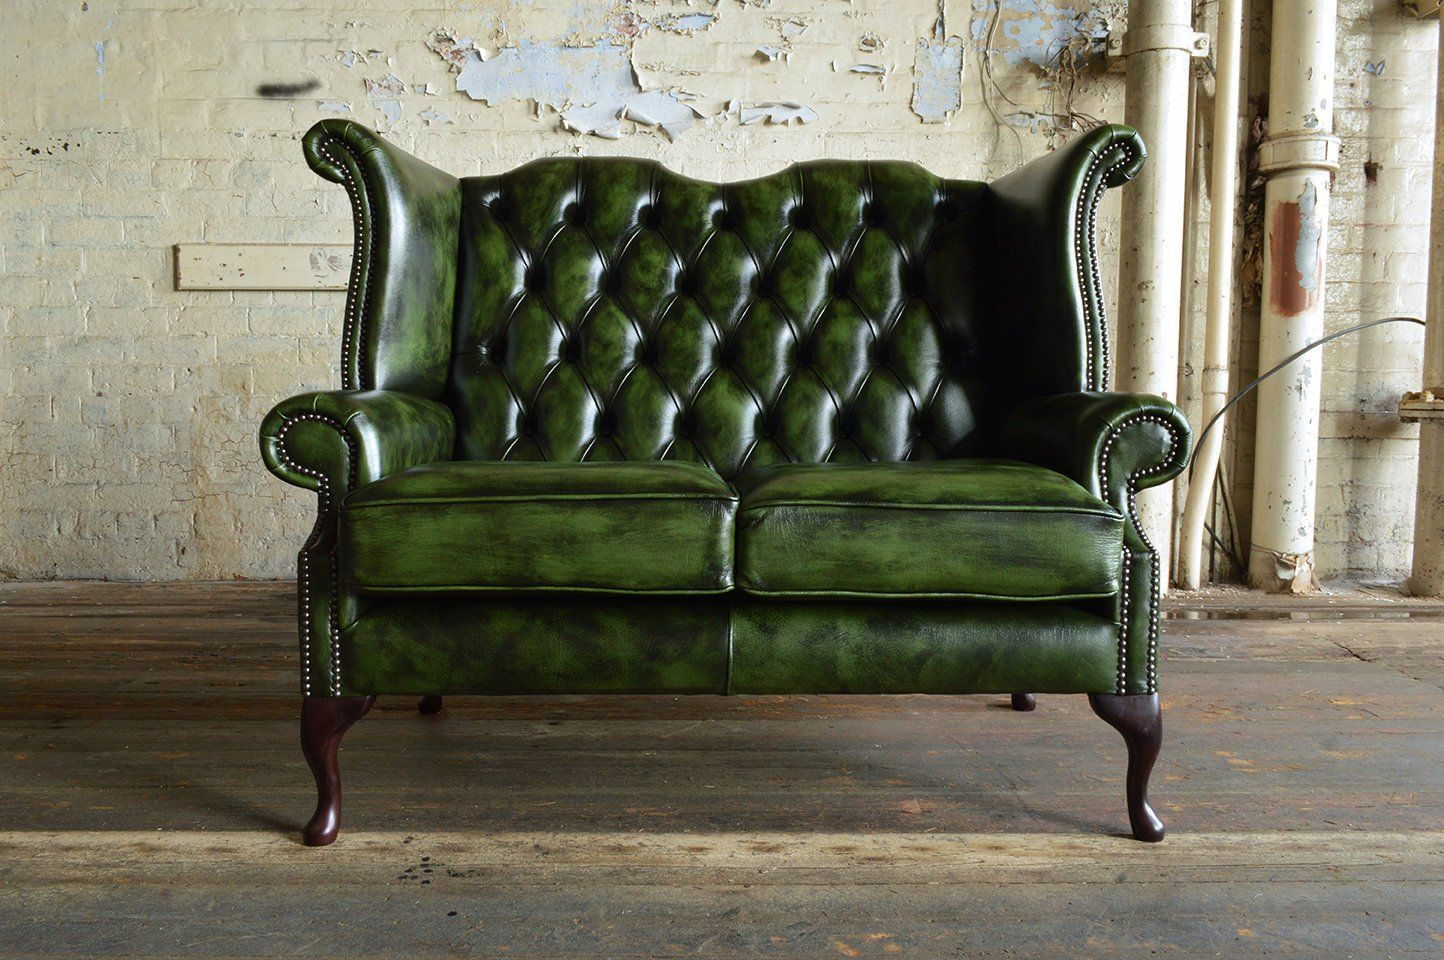 British Handmade Traditional Green Leather 2 Seater High Back Chesterfield S Green Leather Chesterfield Sofa Chesterfield Sofa Design Vintage Chesterfield Sofa